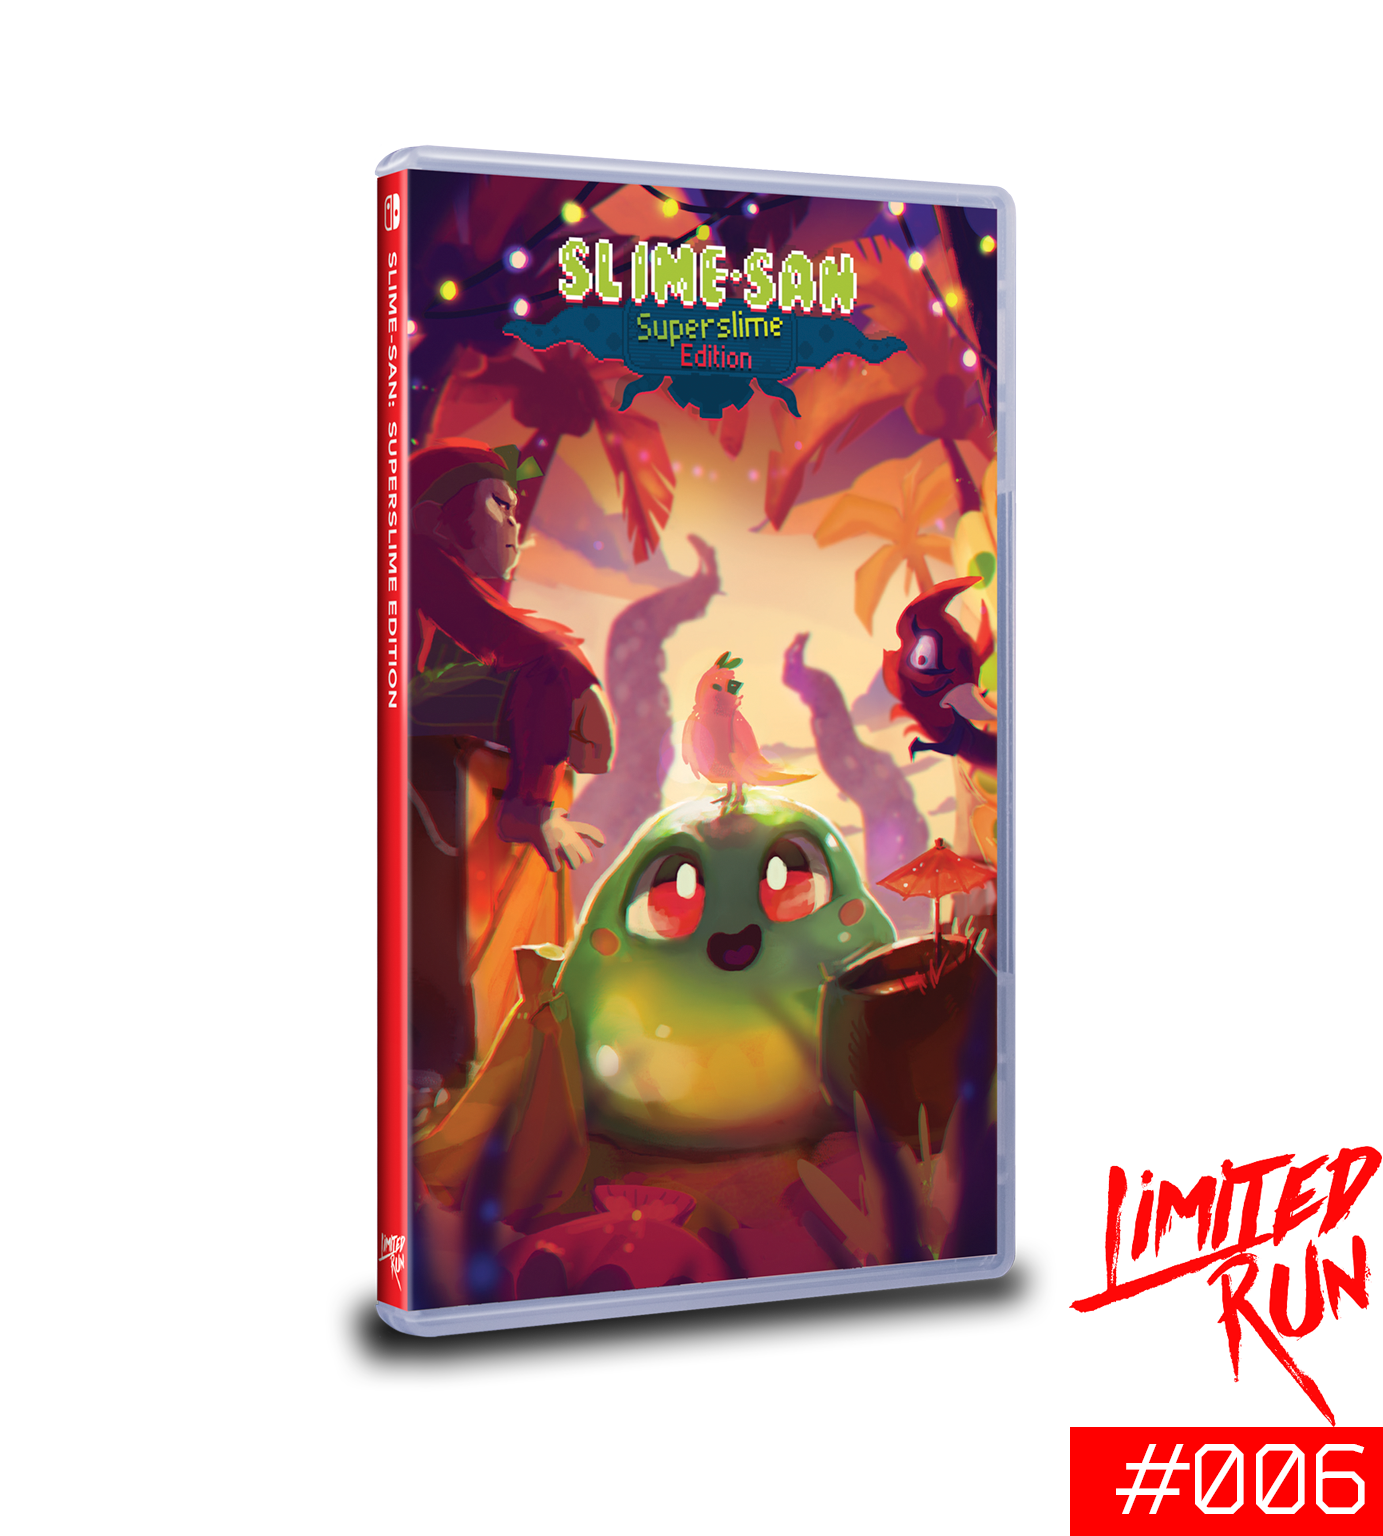 Switch Limited Run #6: Slime-san: Superslime Edition [PREORDER]